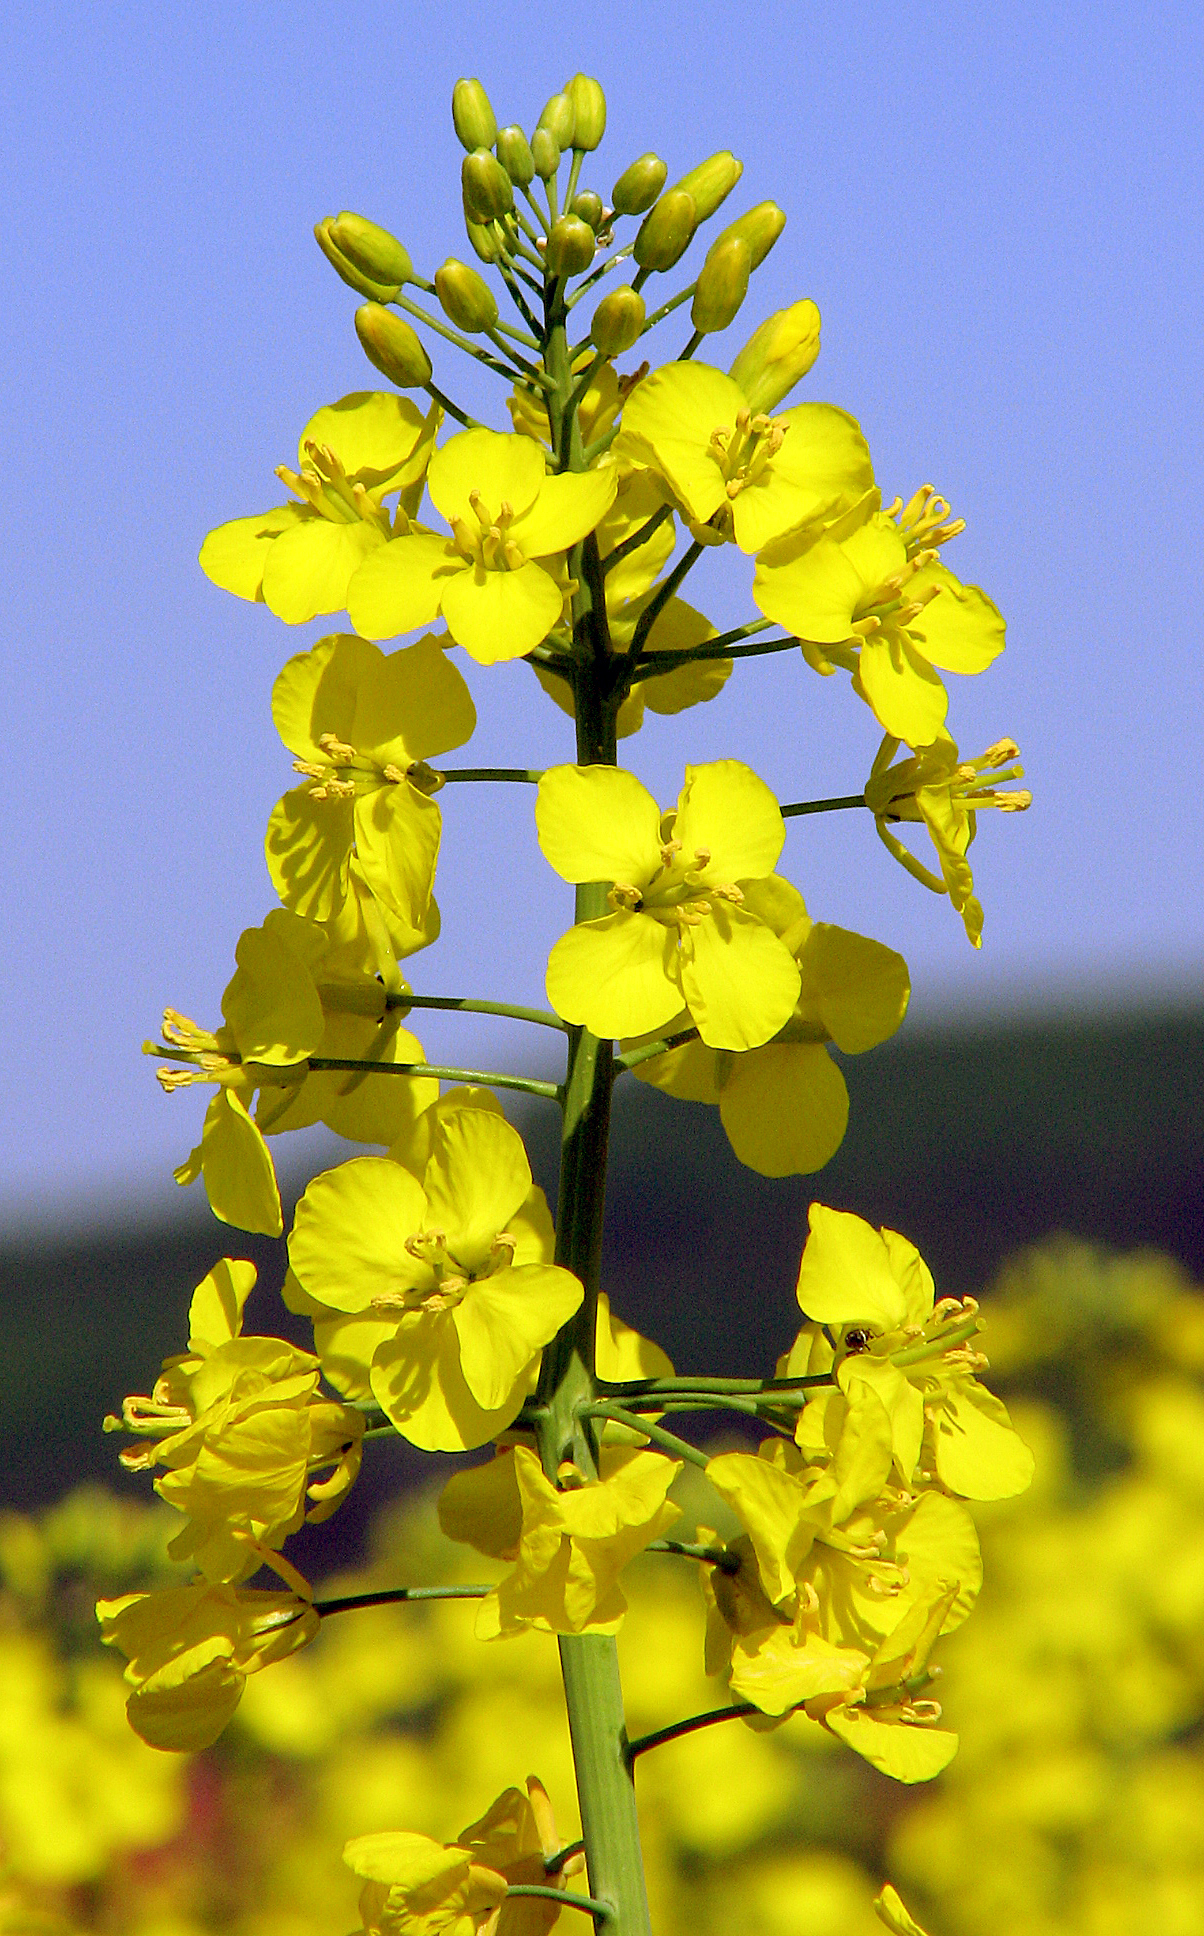 canola flower garden - photo #31